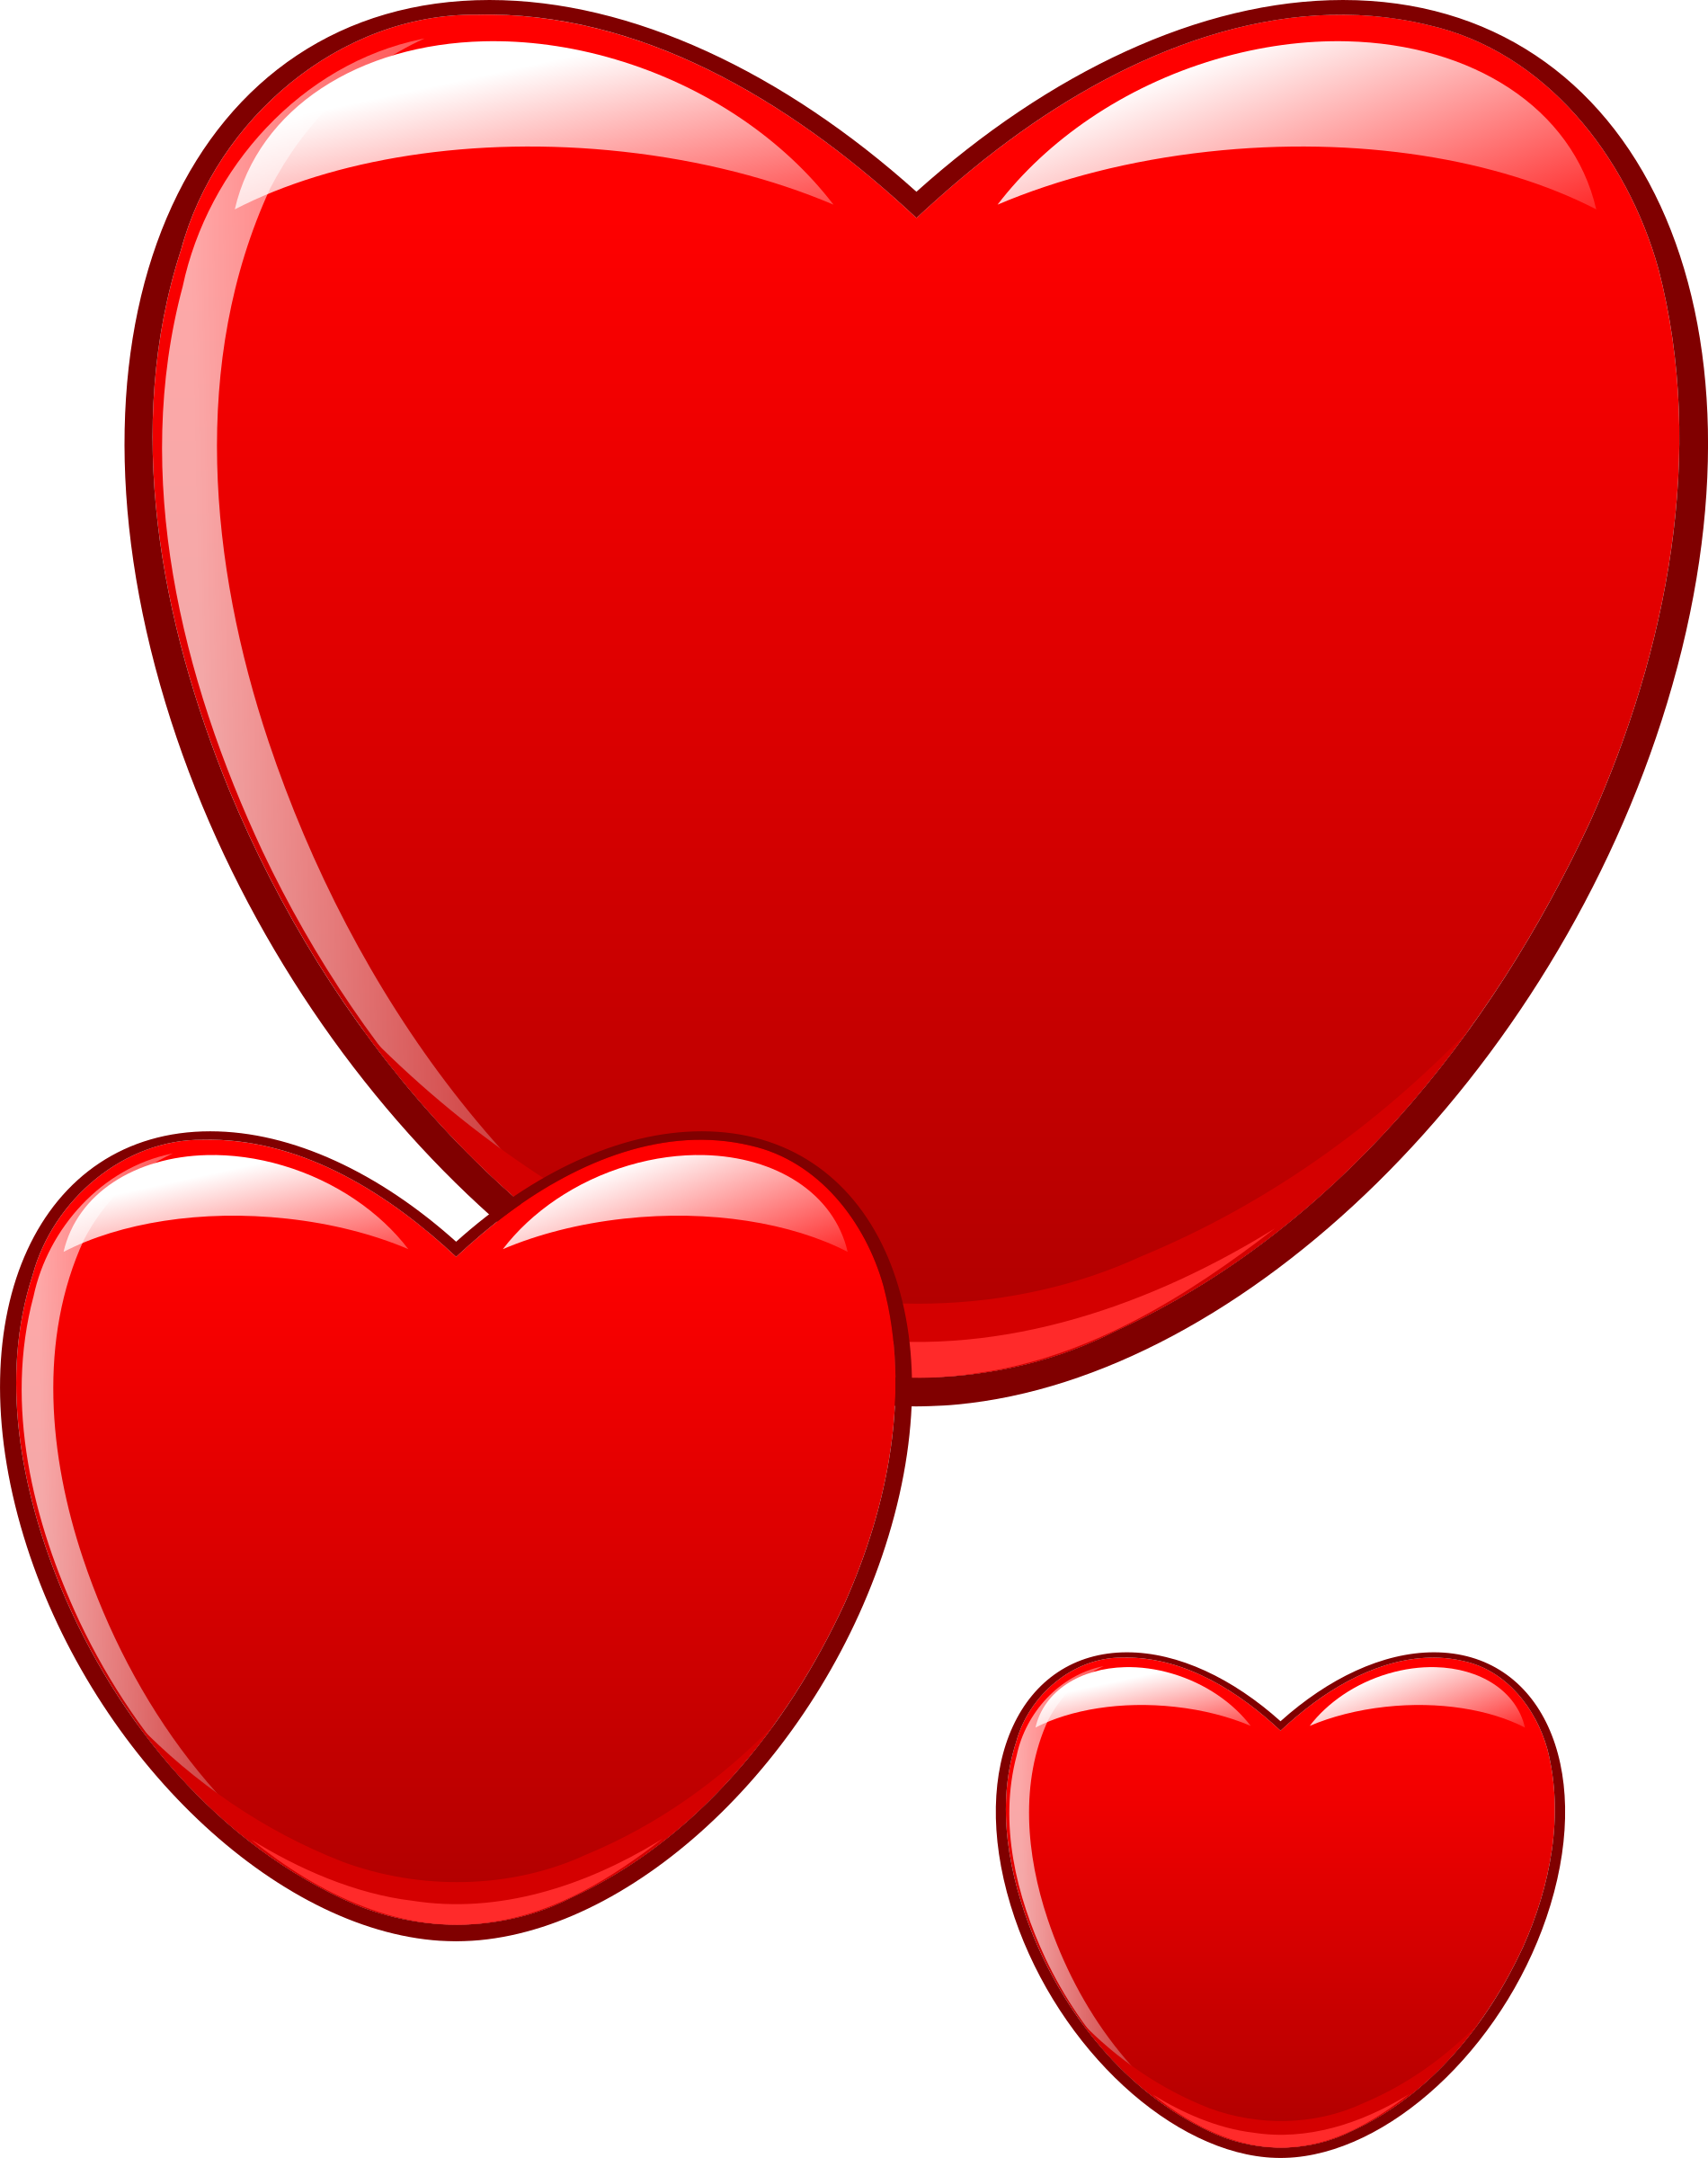 Heart beating clipart vector free stock Clipart - Hearts that beat as one vector free stock